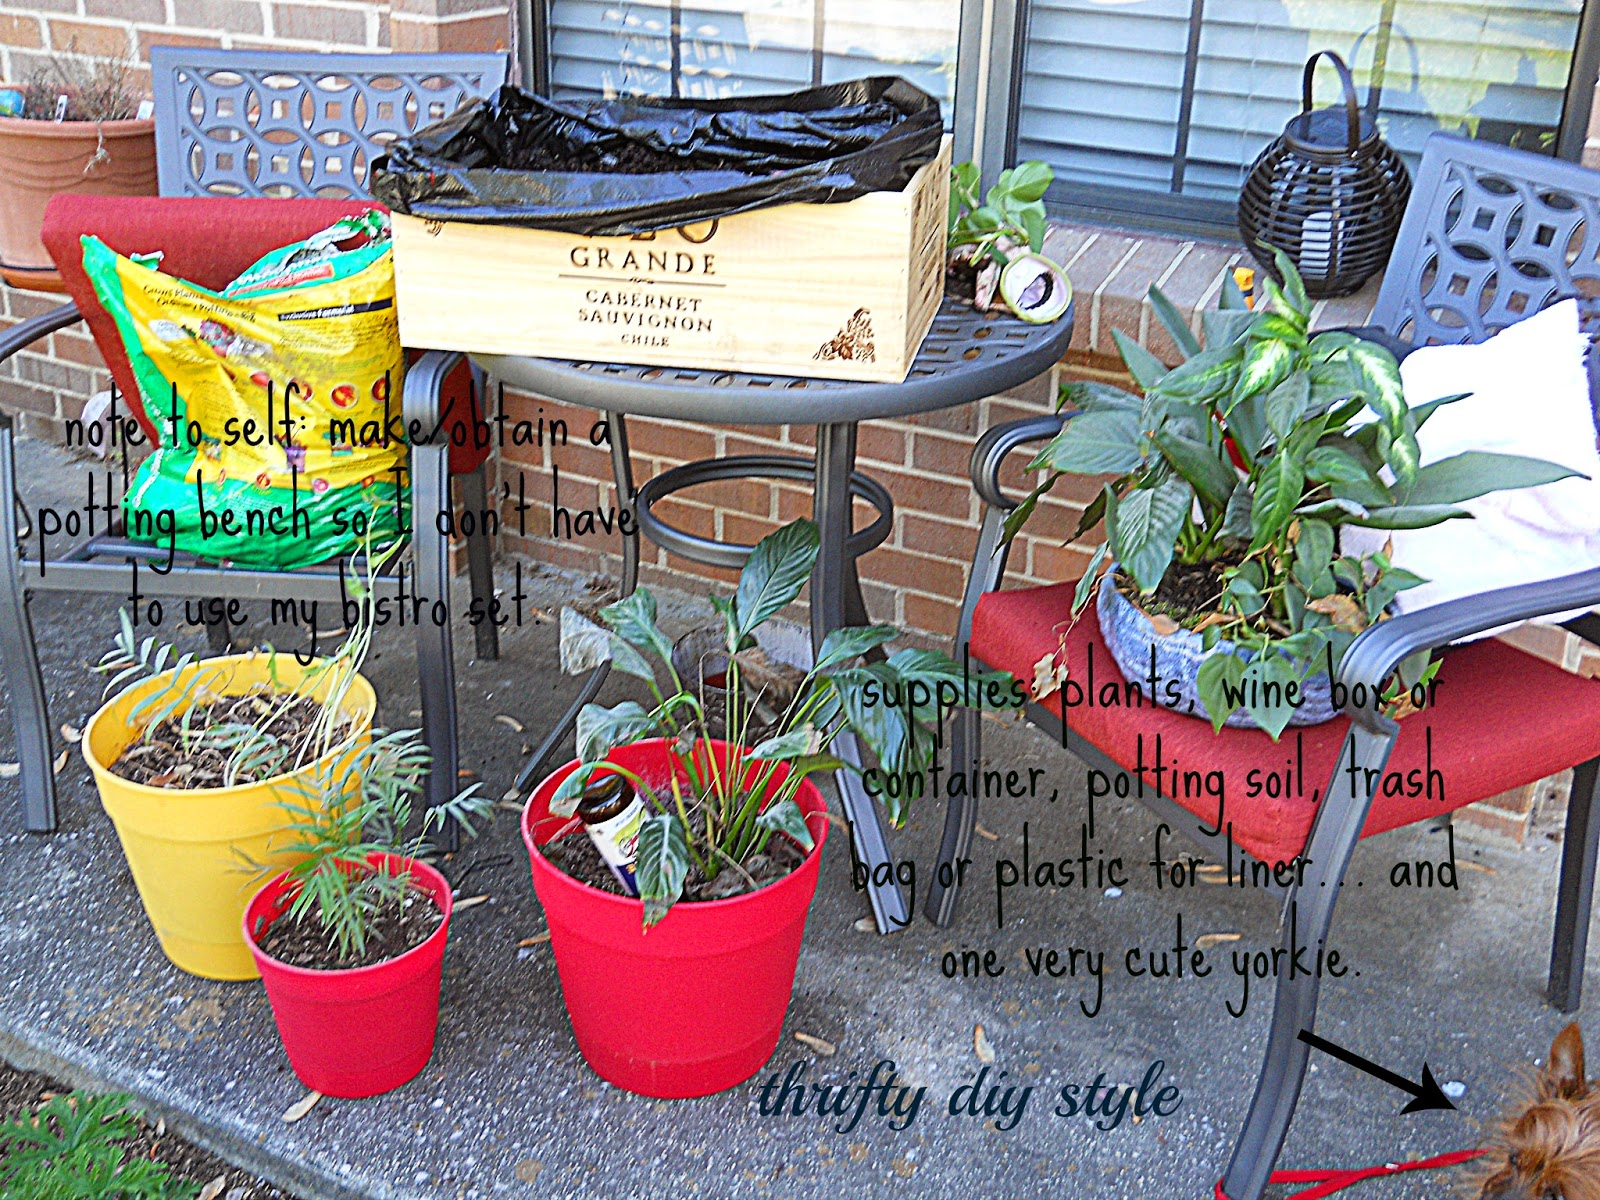 Thrifty diy style for Empty wine crates